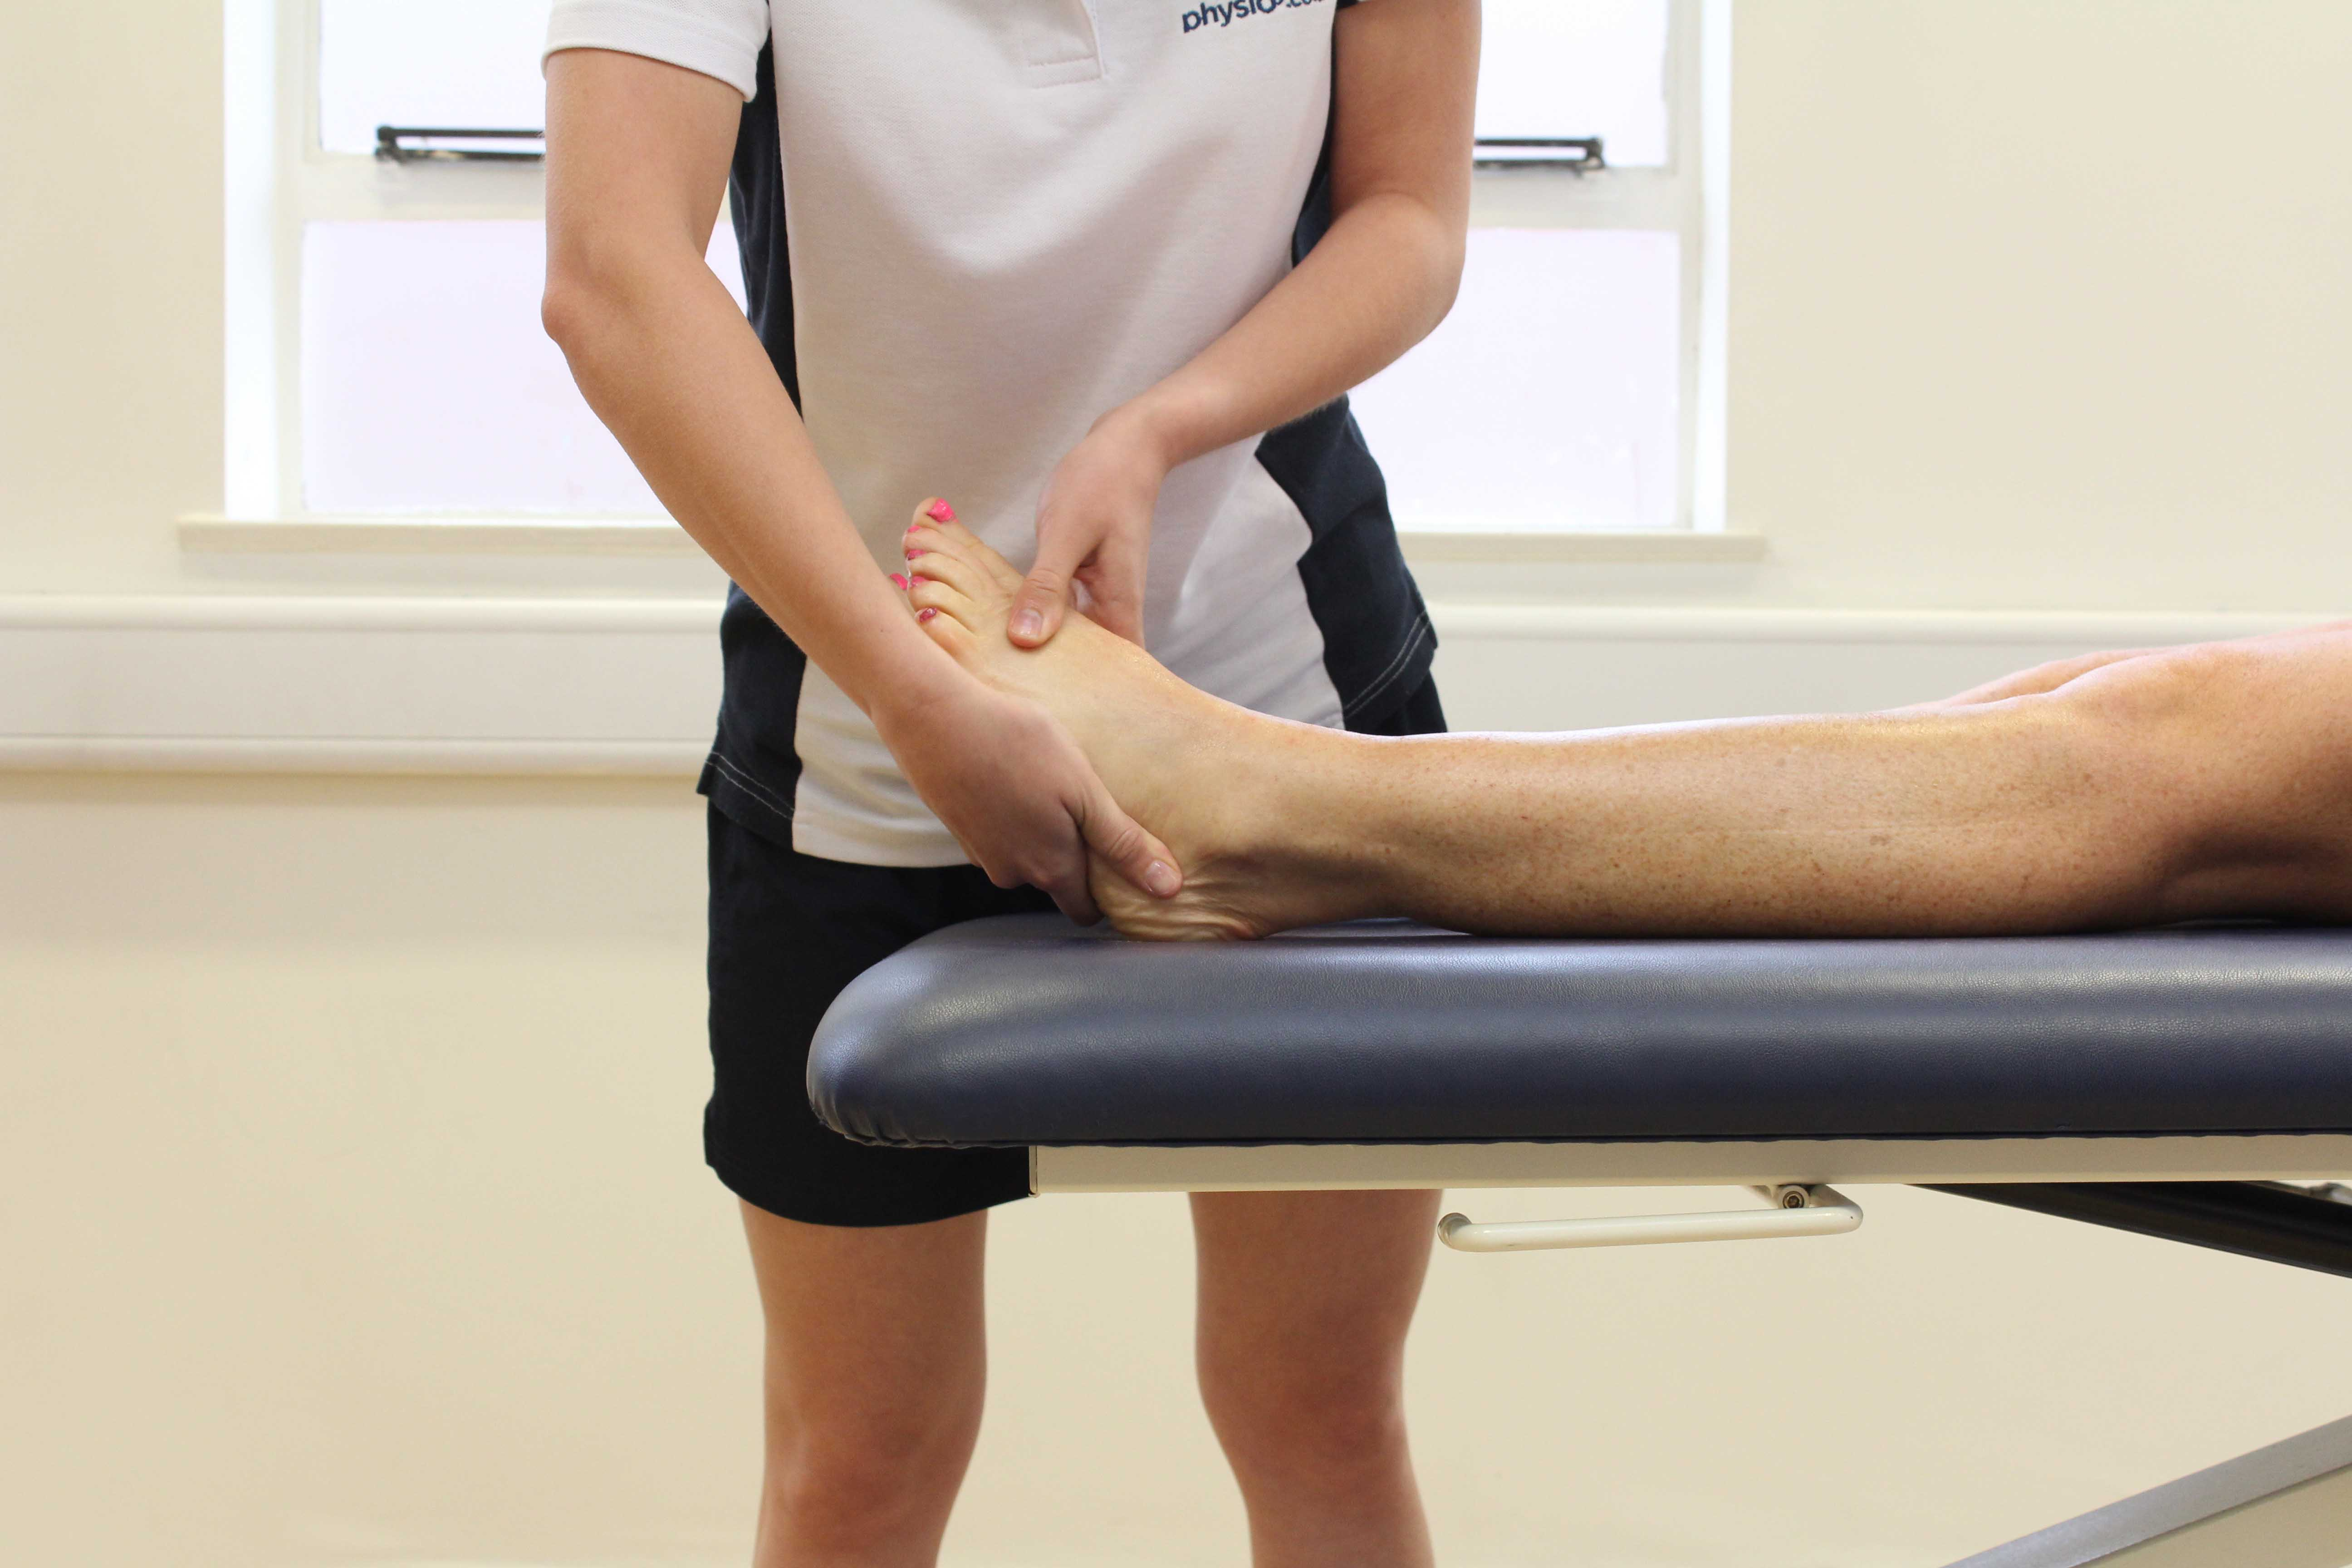 Stress Fracture Of The Metatarsal Foot Conditions Musculoskeletal What We Treat Physio Co Uk